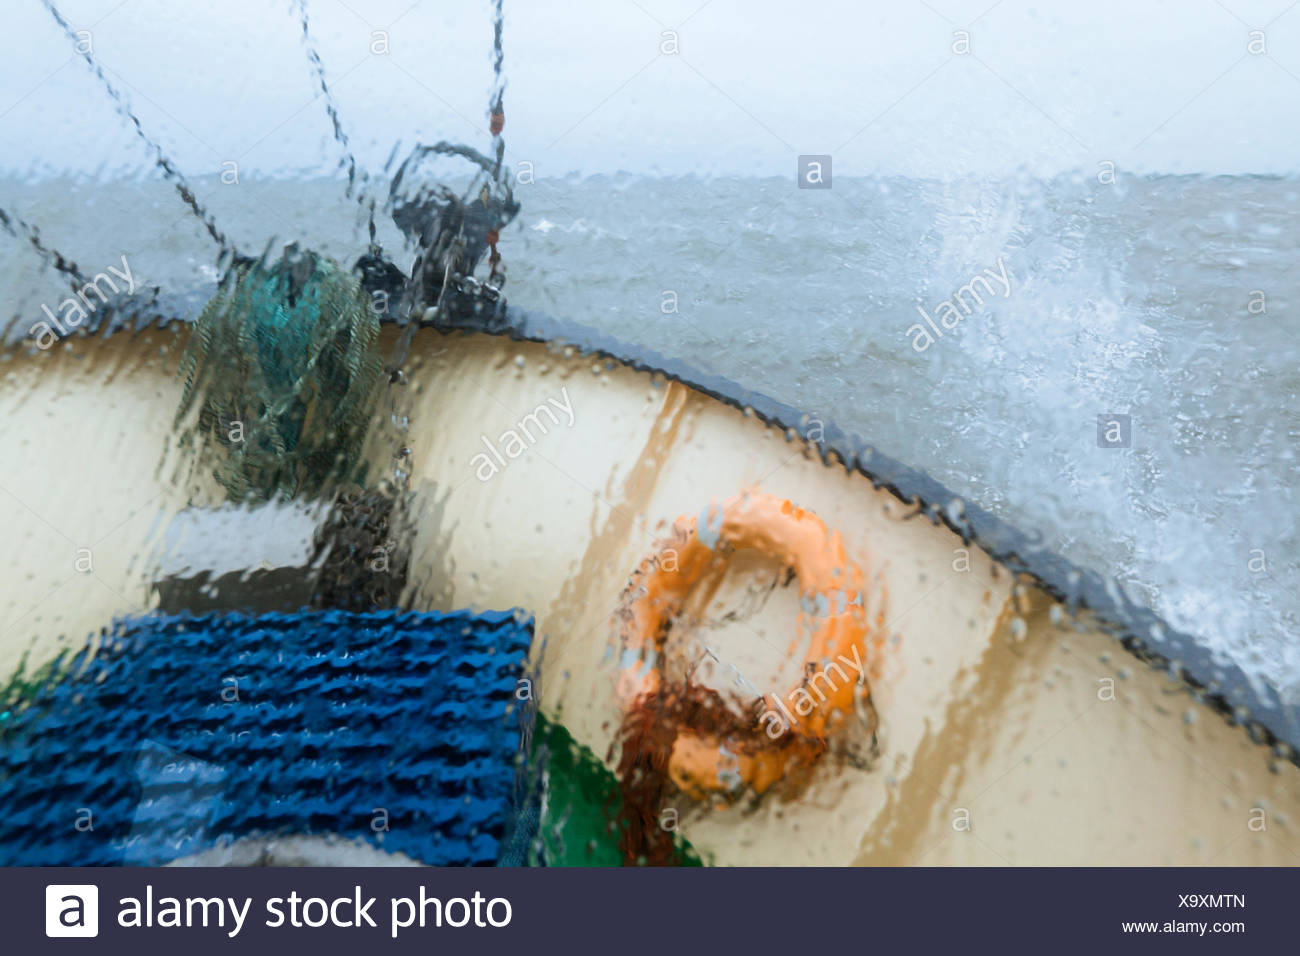 View through the wet window of the bow of the shrimp boat 'Columbus' from Pellworm island, travelling in North Frisian coastal - Stock Image